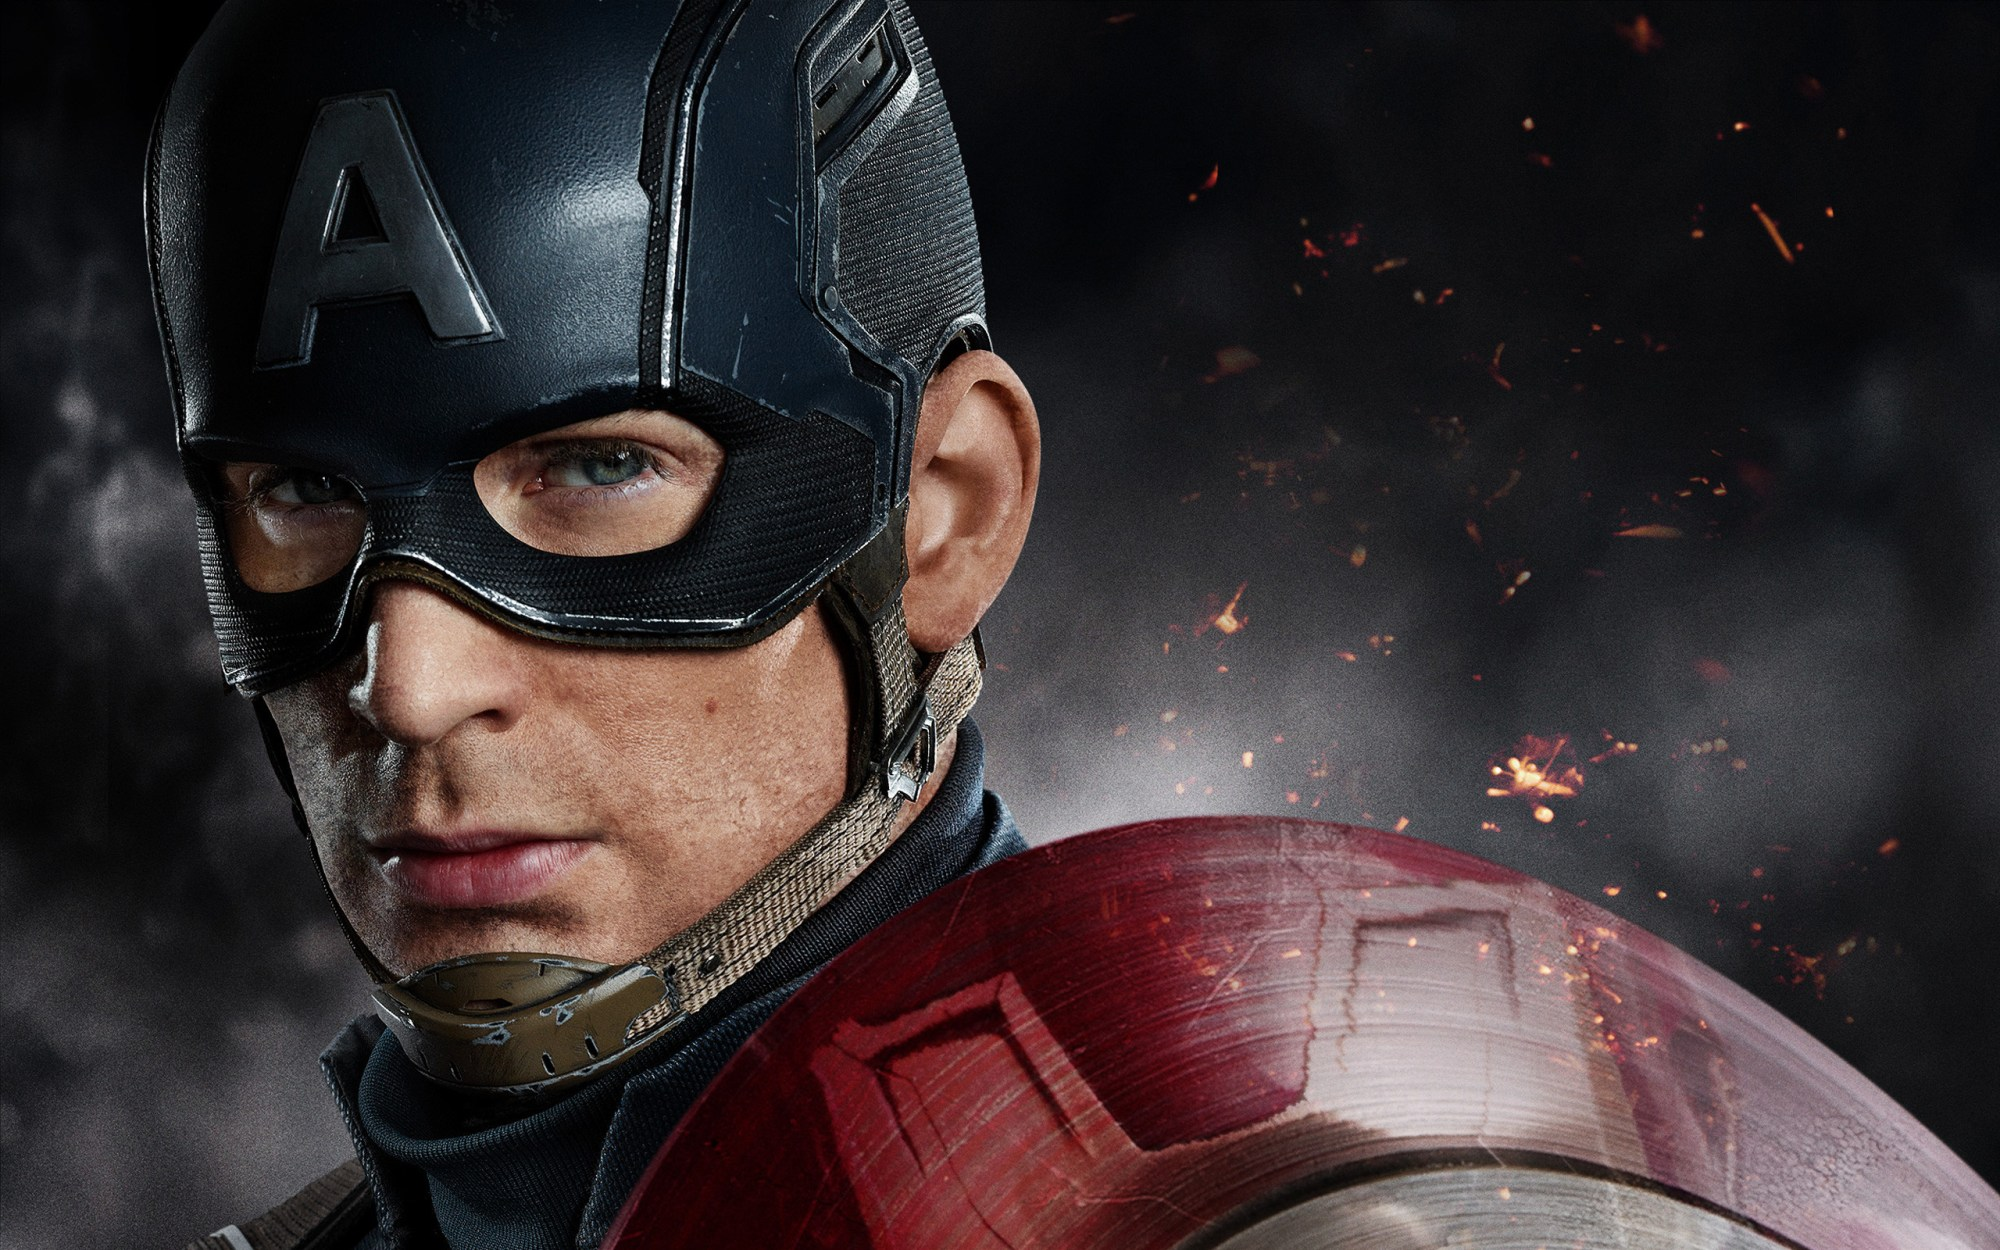 hight resolution of 1920x1080 captain america civil war clipart hd civil war marvel